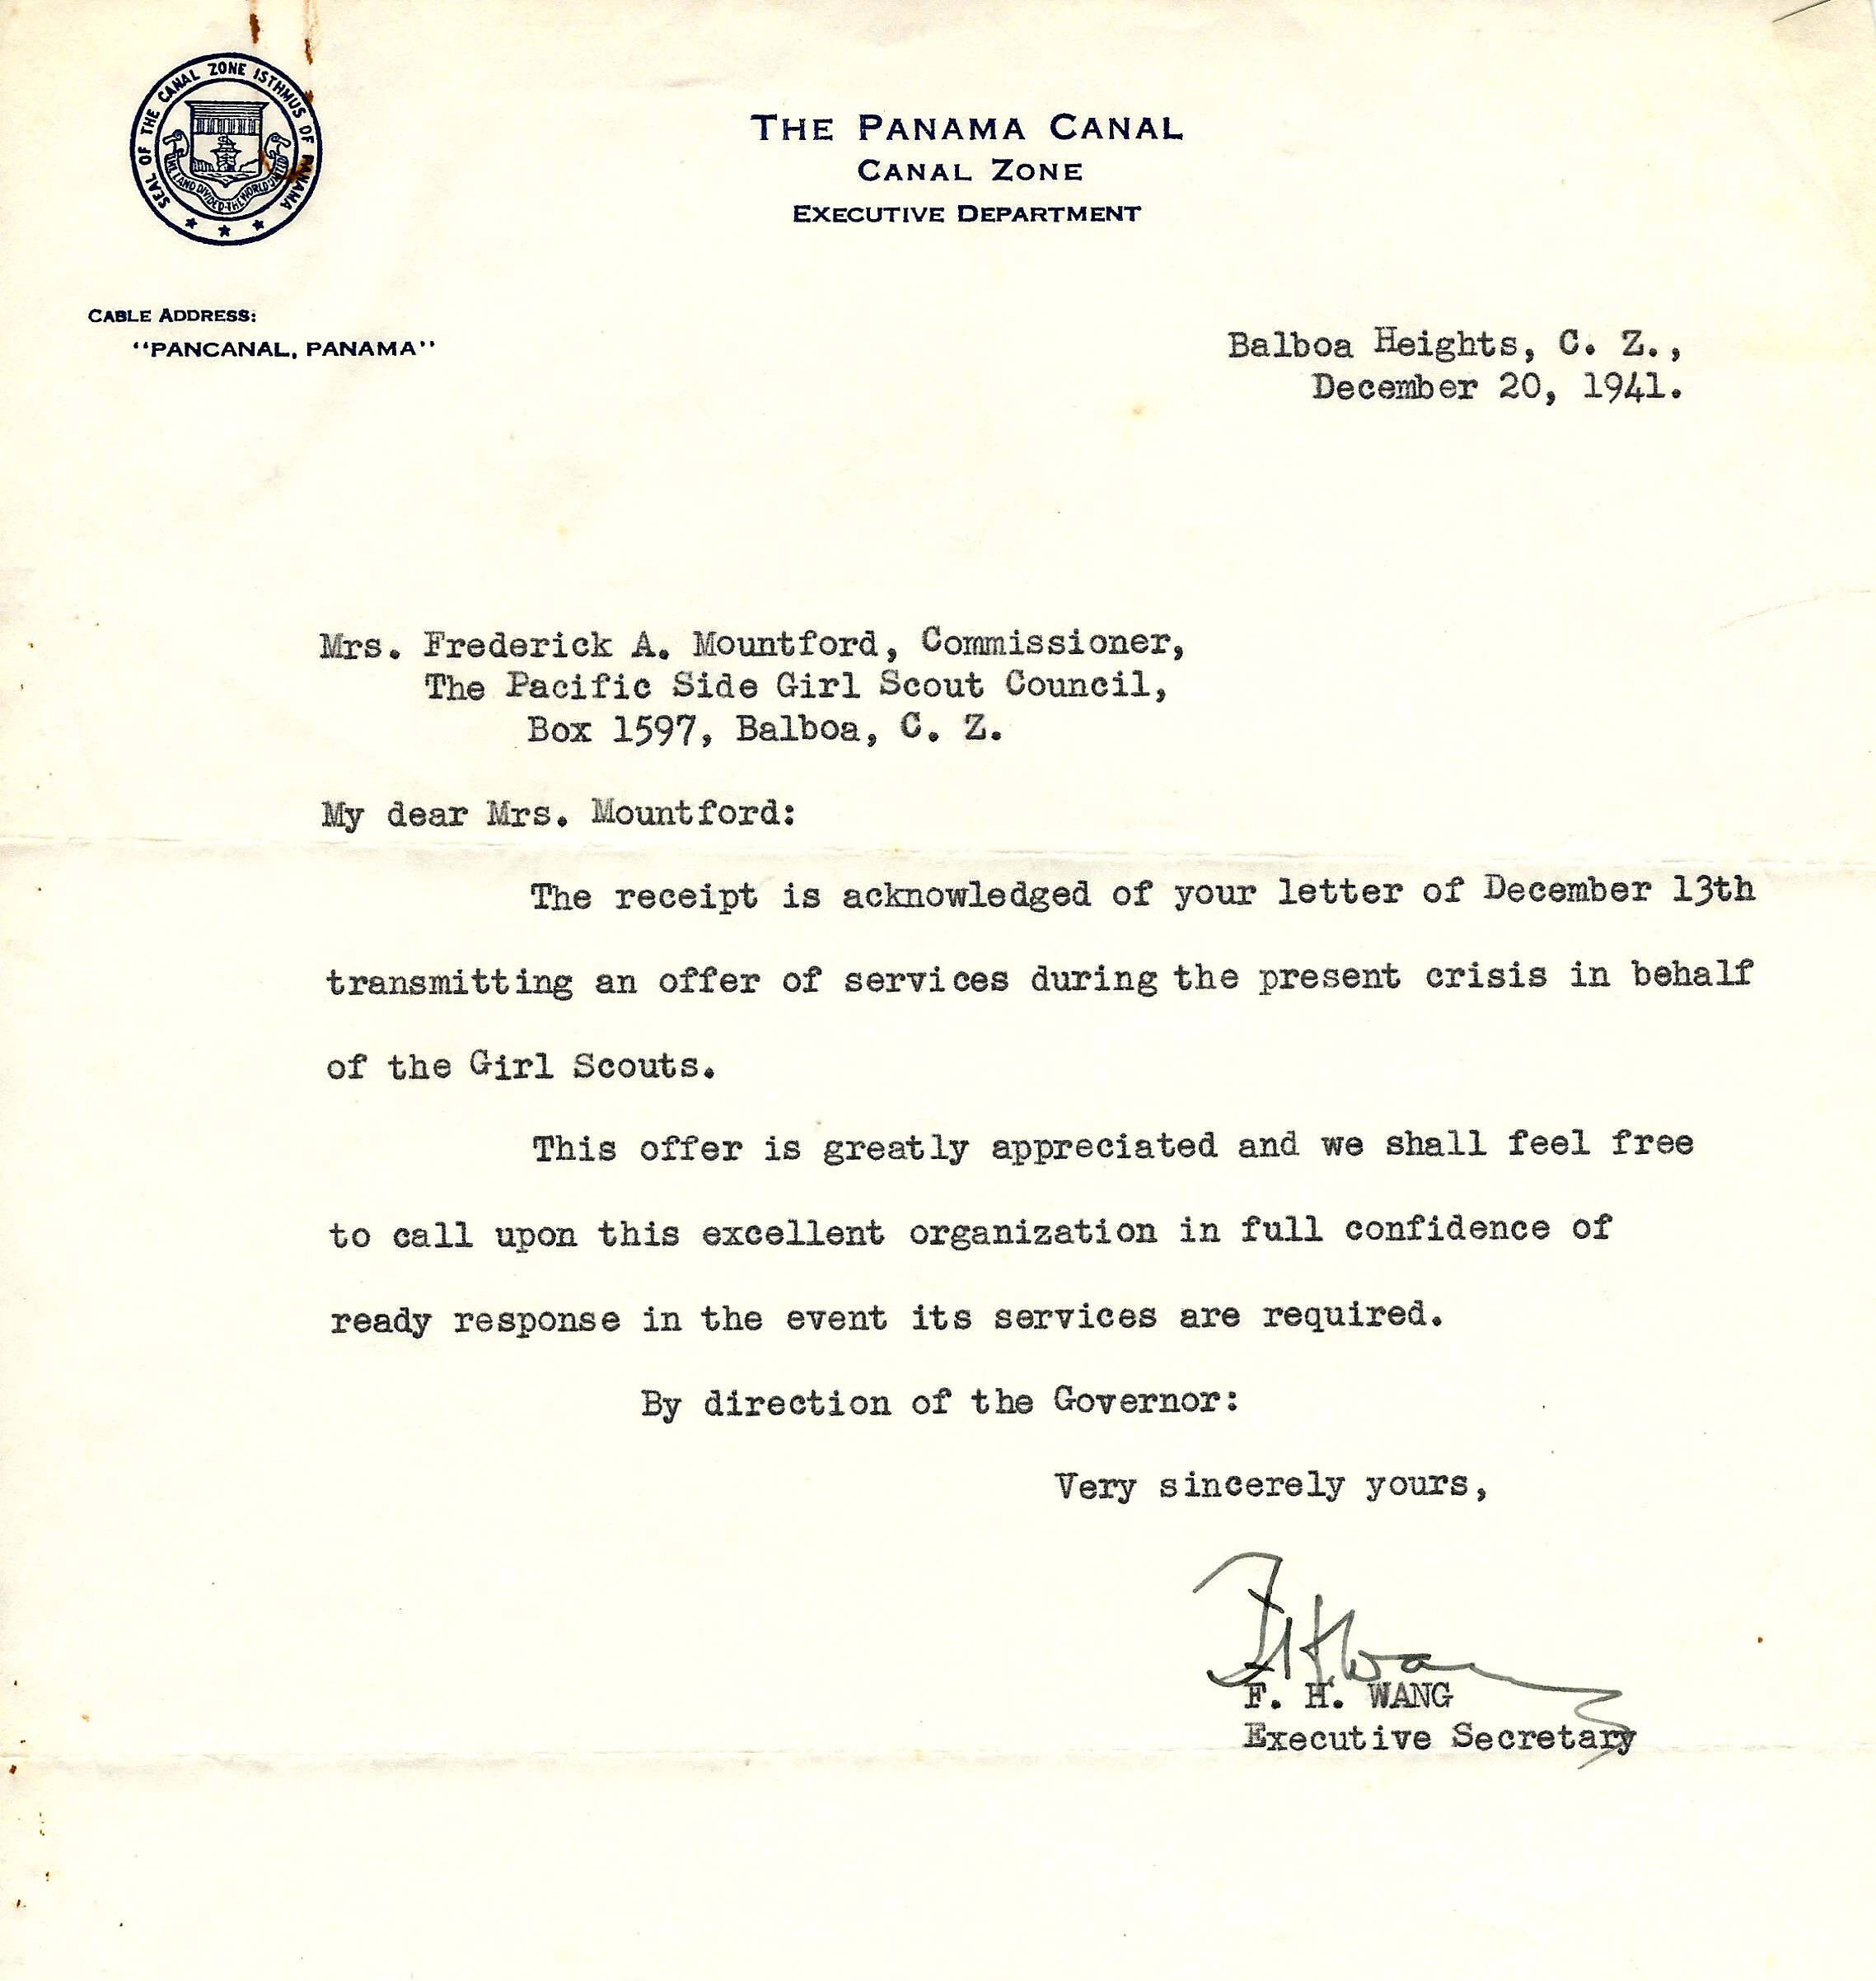 pearl harbor essay question Document based question after the bombing of pearl harbor, was the internment of japanese-americans justified you are going to be the featured guest on cnn.